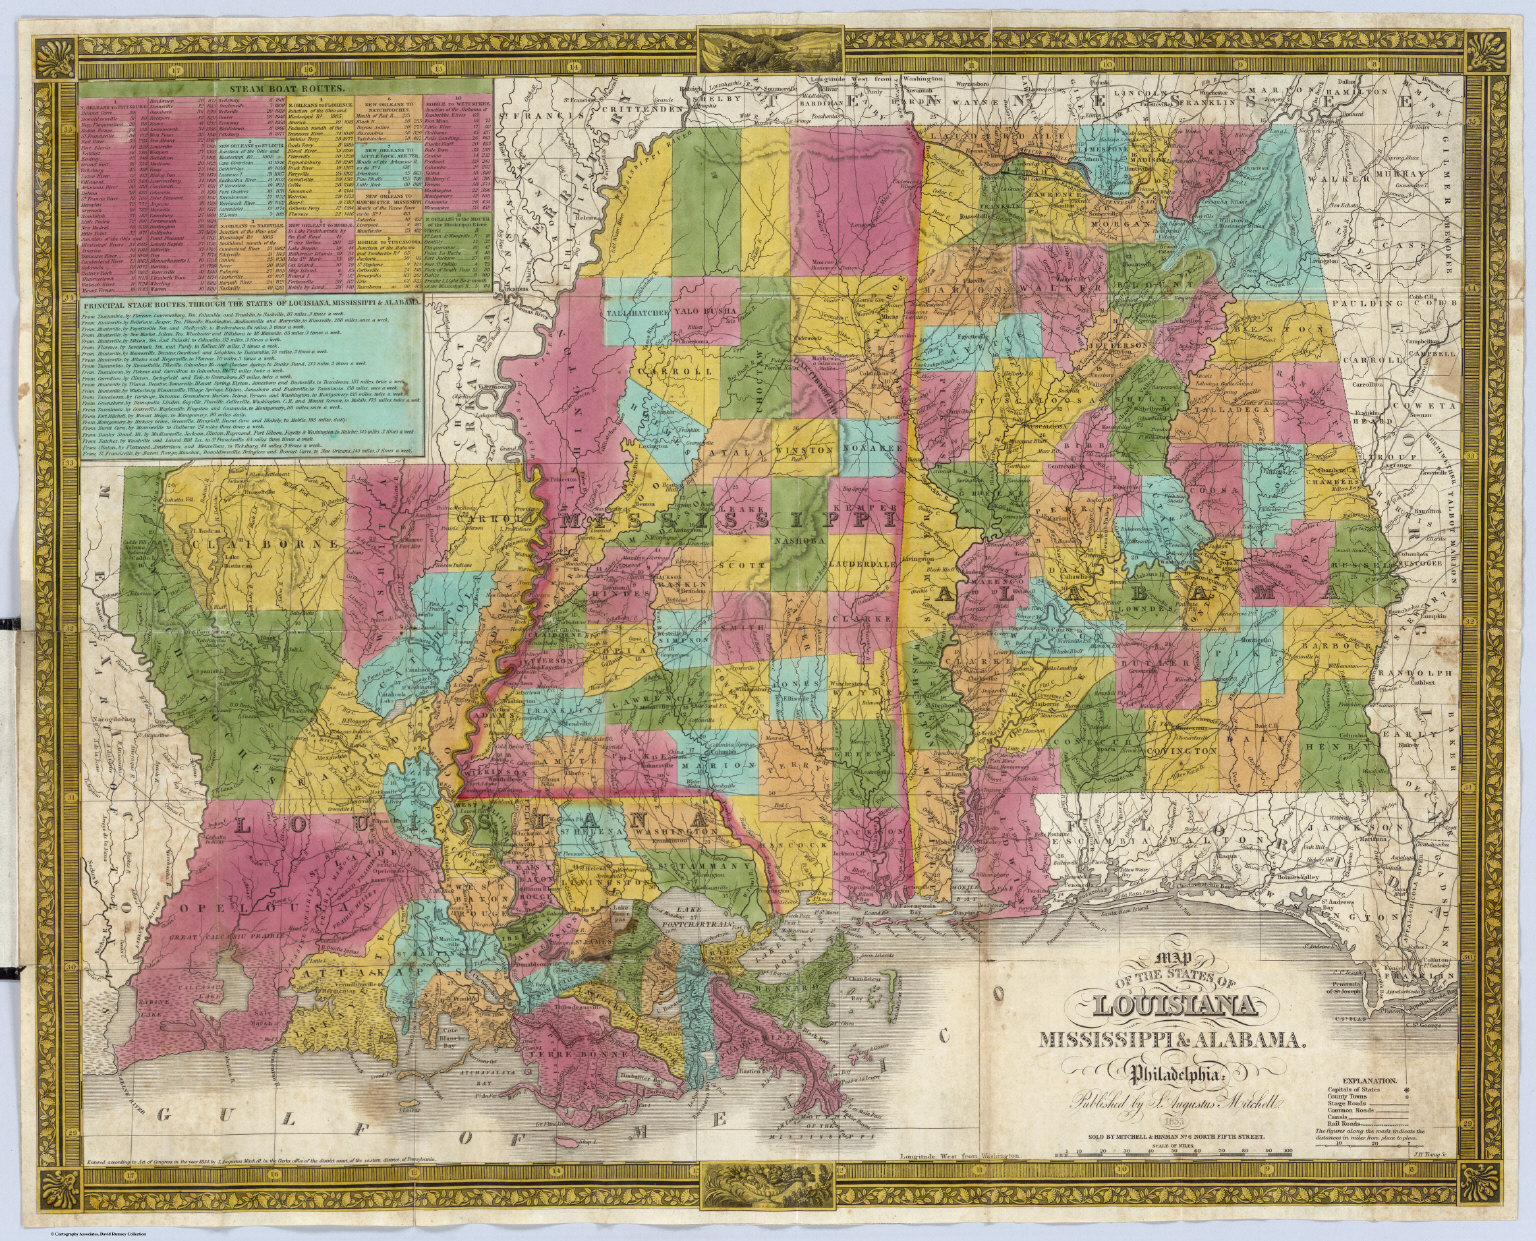 Louisiana Mississippi Alabama David Rumsey Historical Map Collection